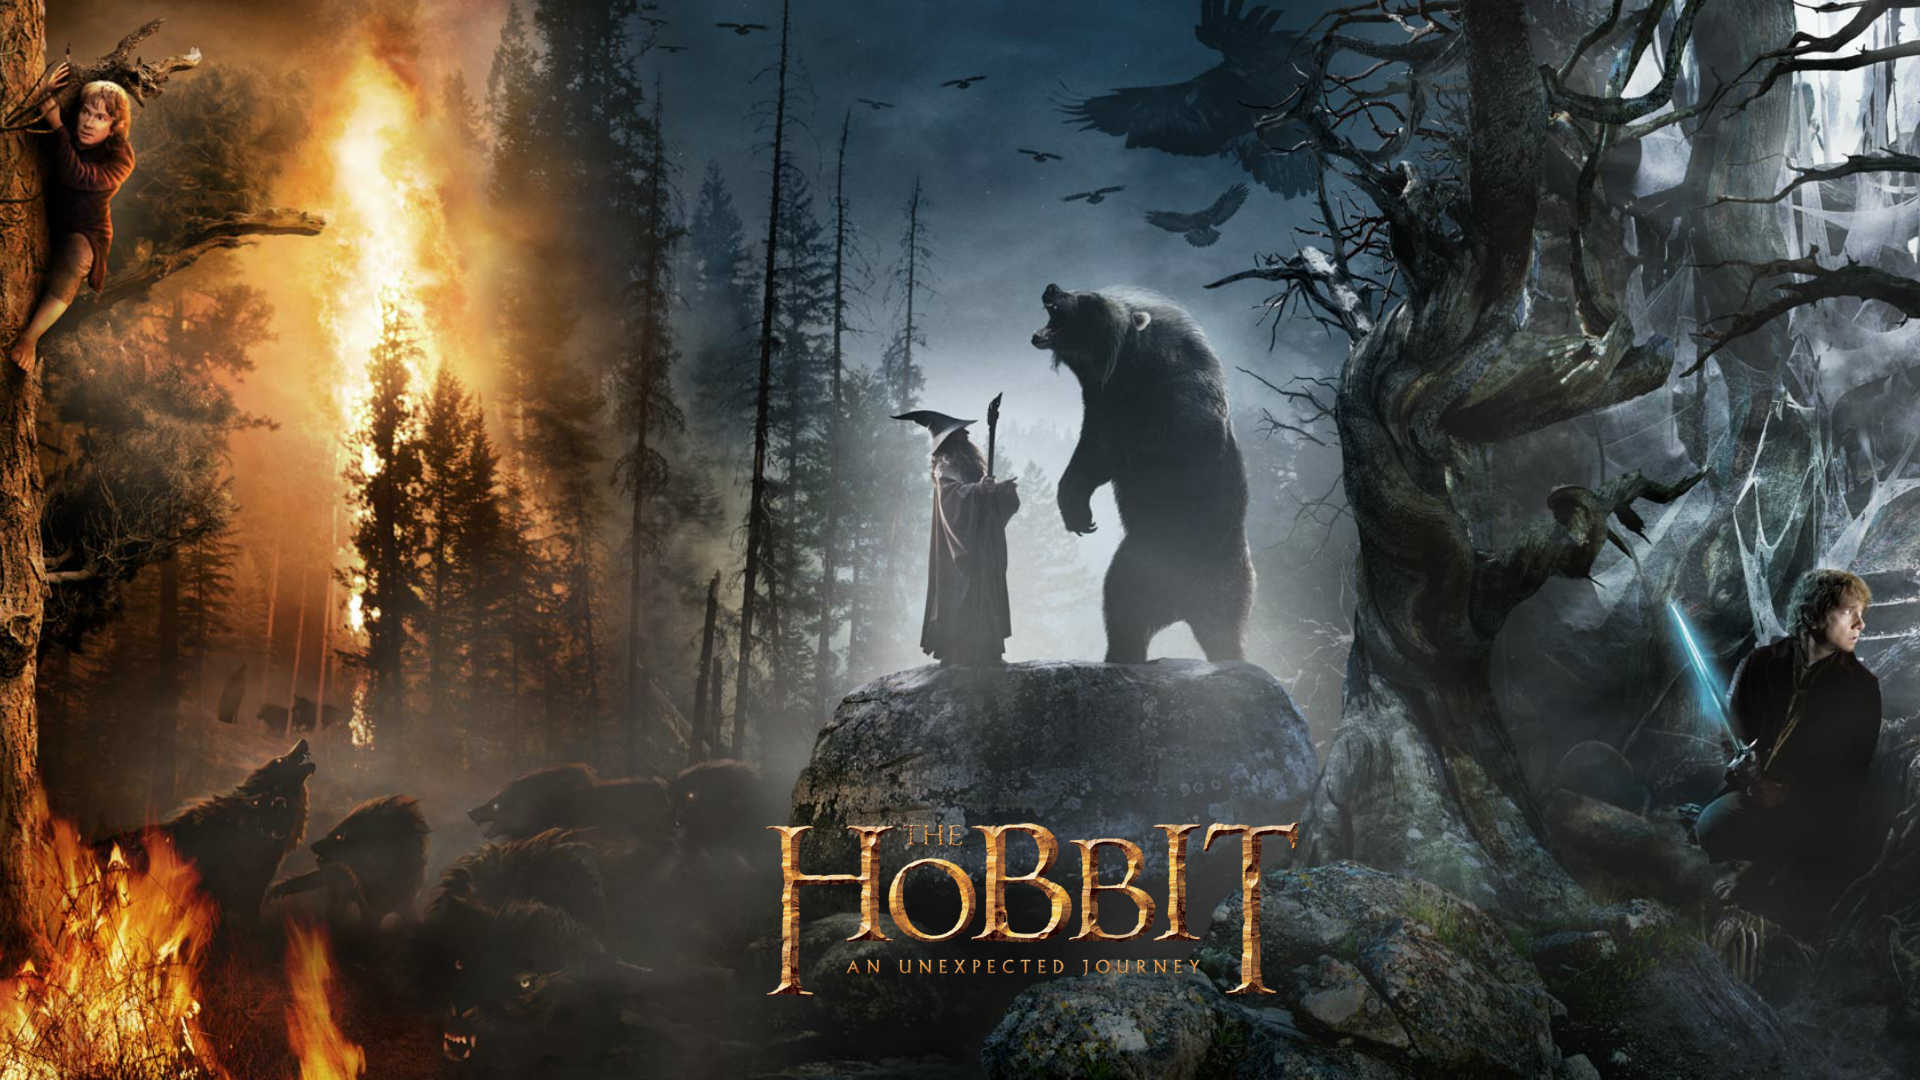 The Hobbit 2012 Movie Wallpapers HD Wallpapers 1920x1080